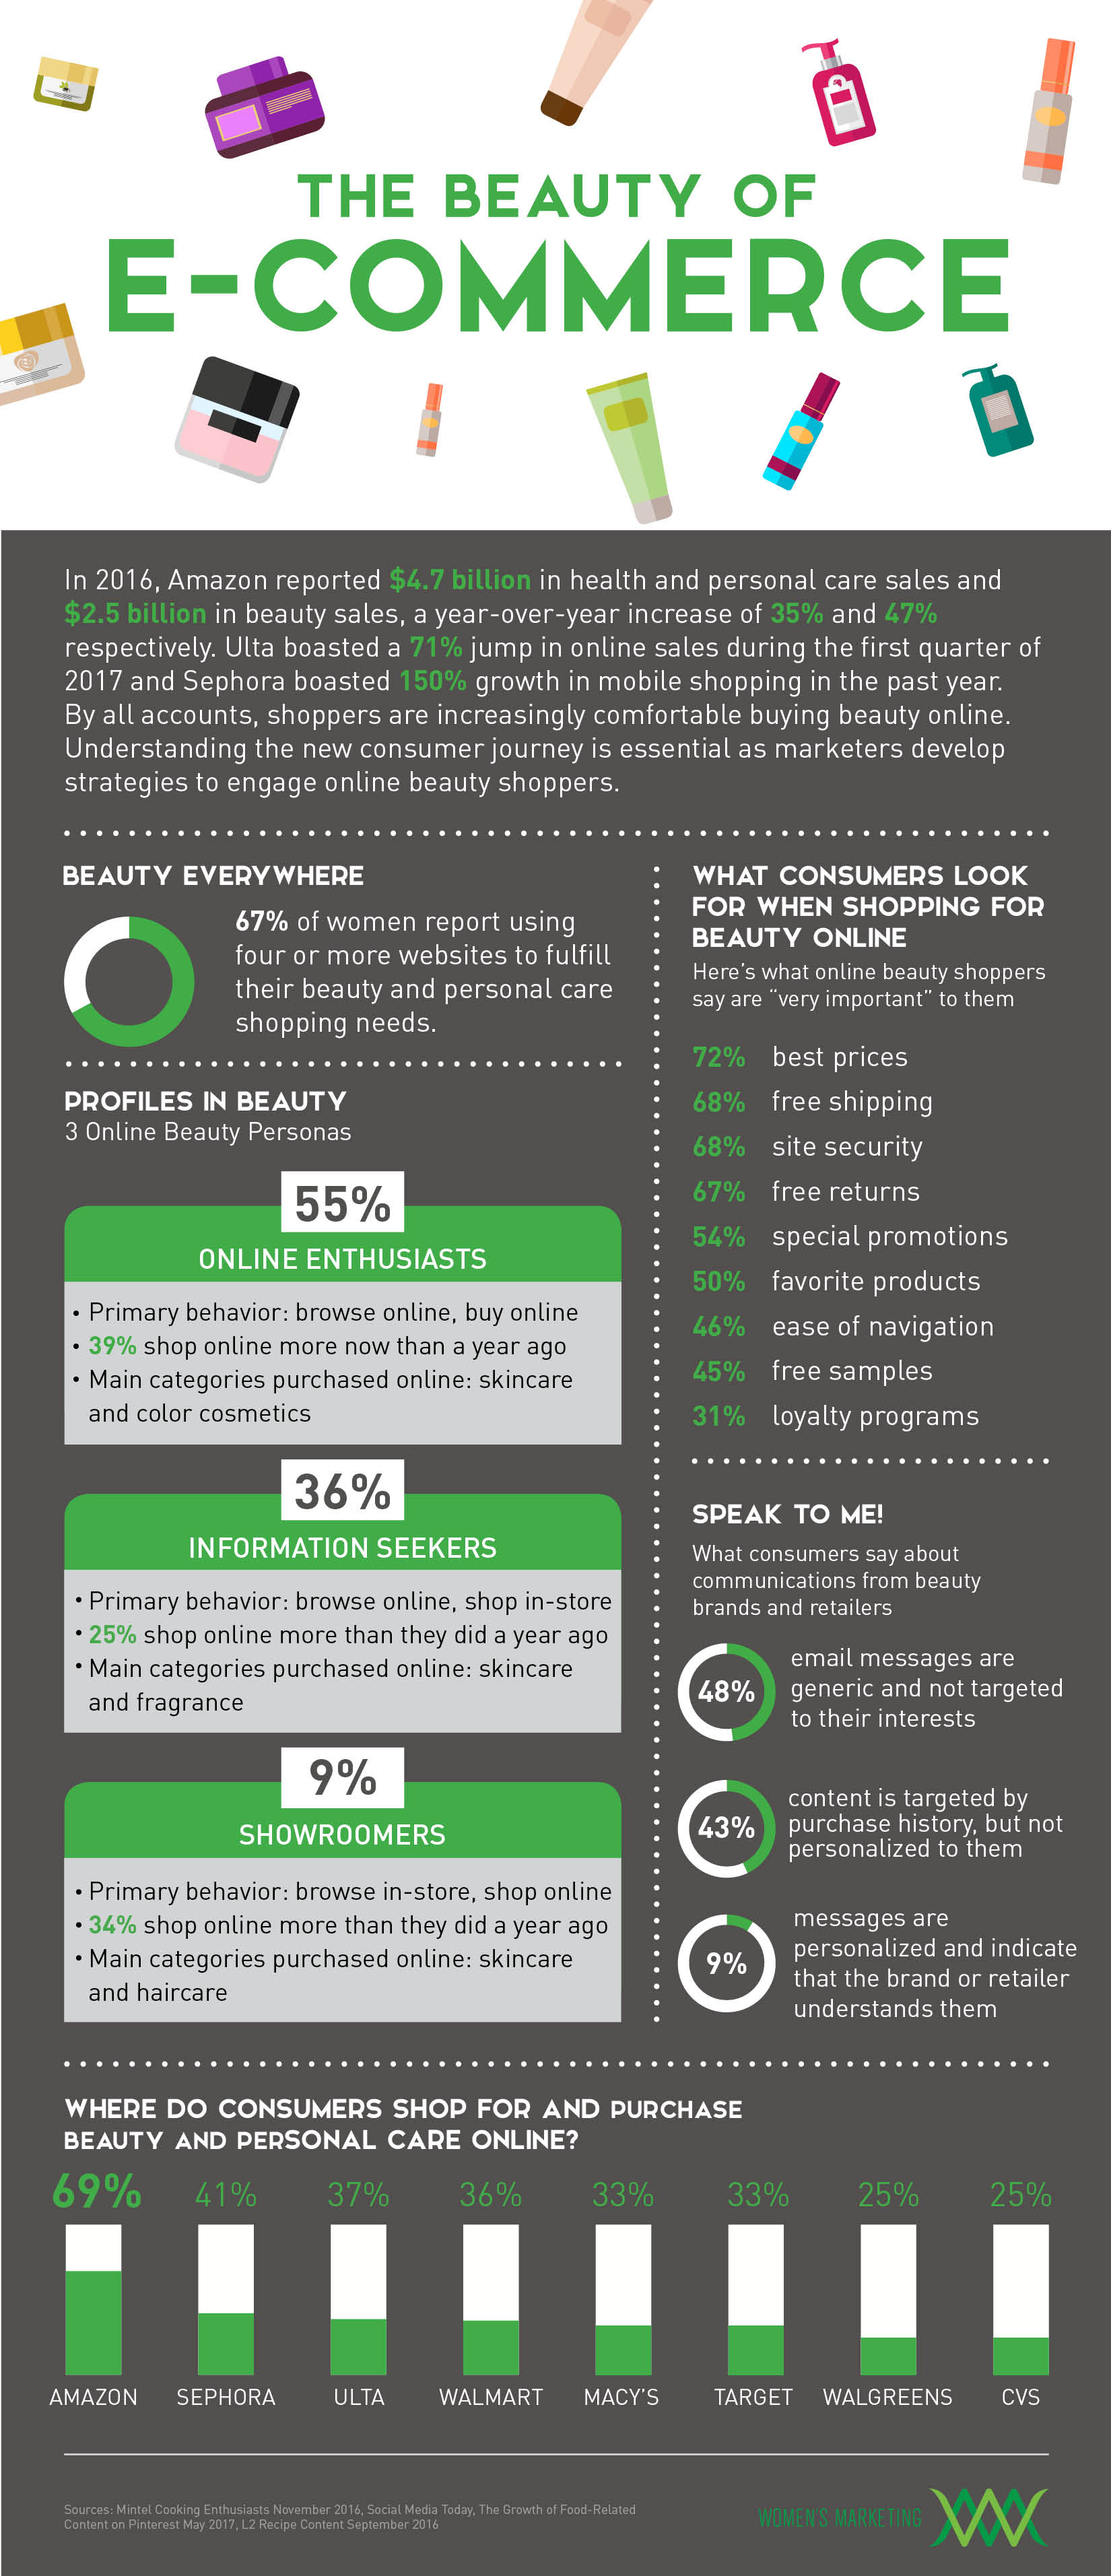 BeautyOfECommerce_Infographic_FINAL.jpg